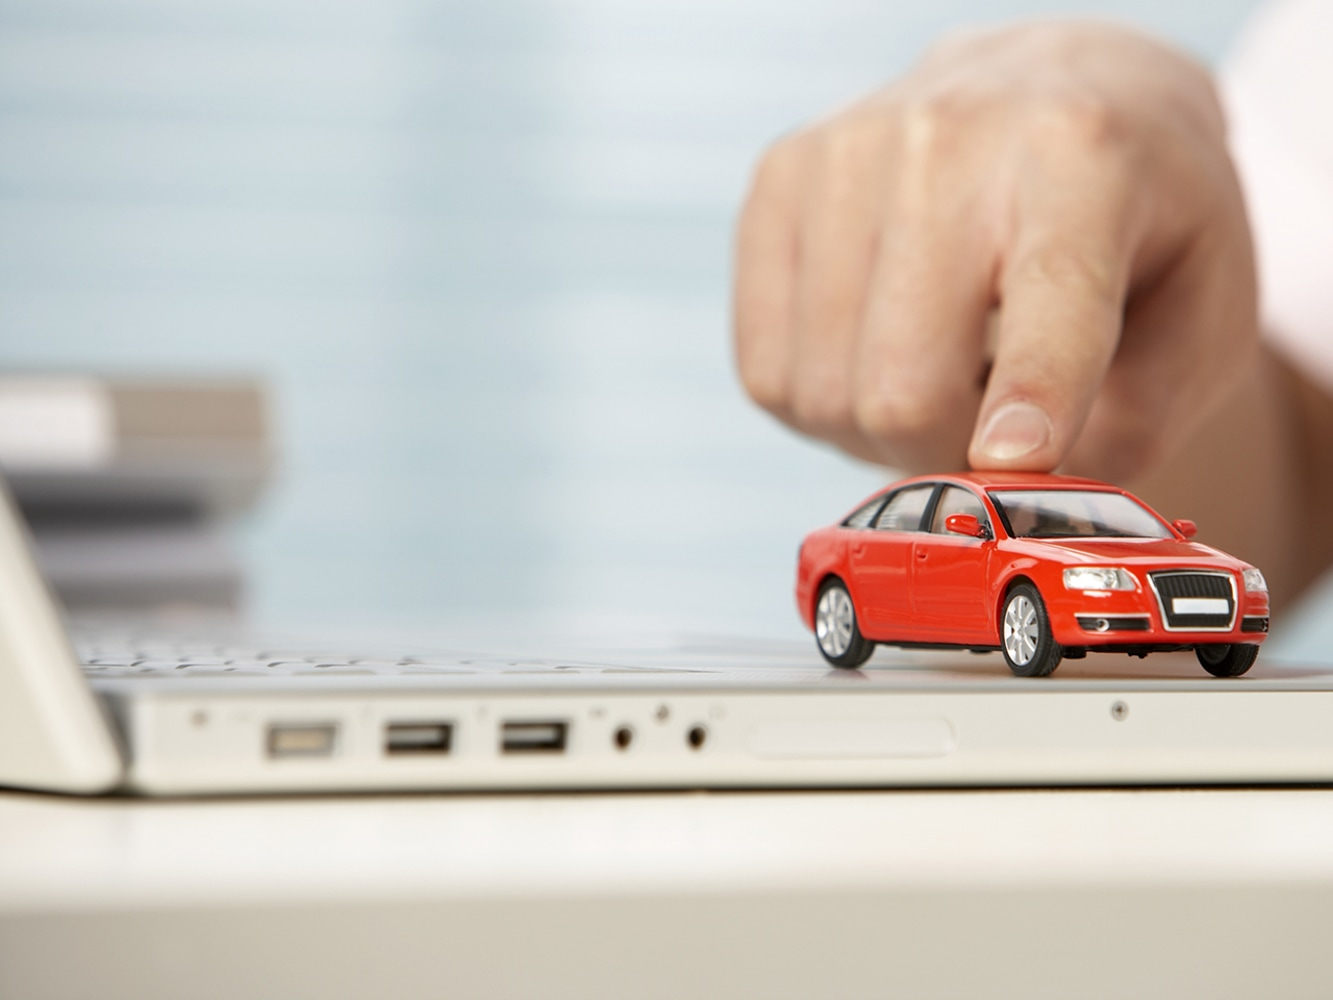 10 10 tips for car buying - A Businessman Playing With A Toy Car At His Desk